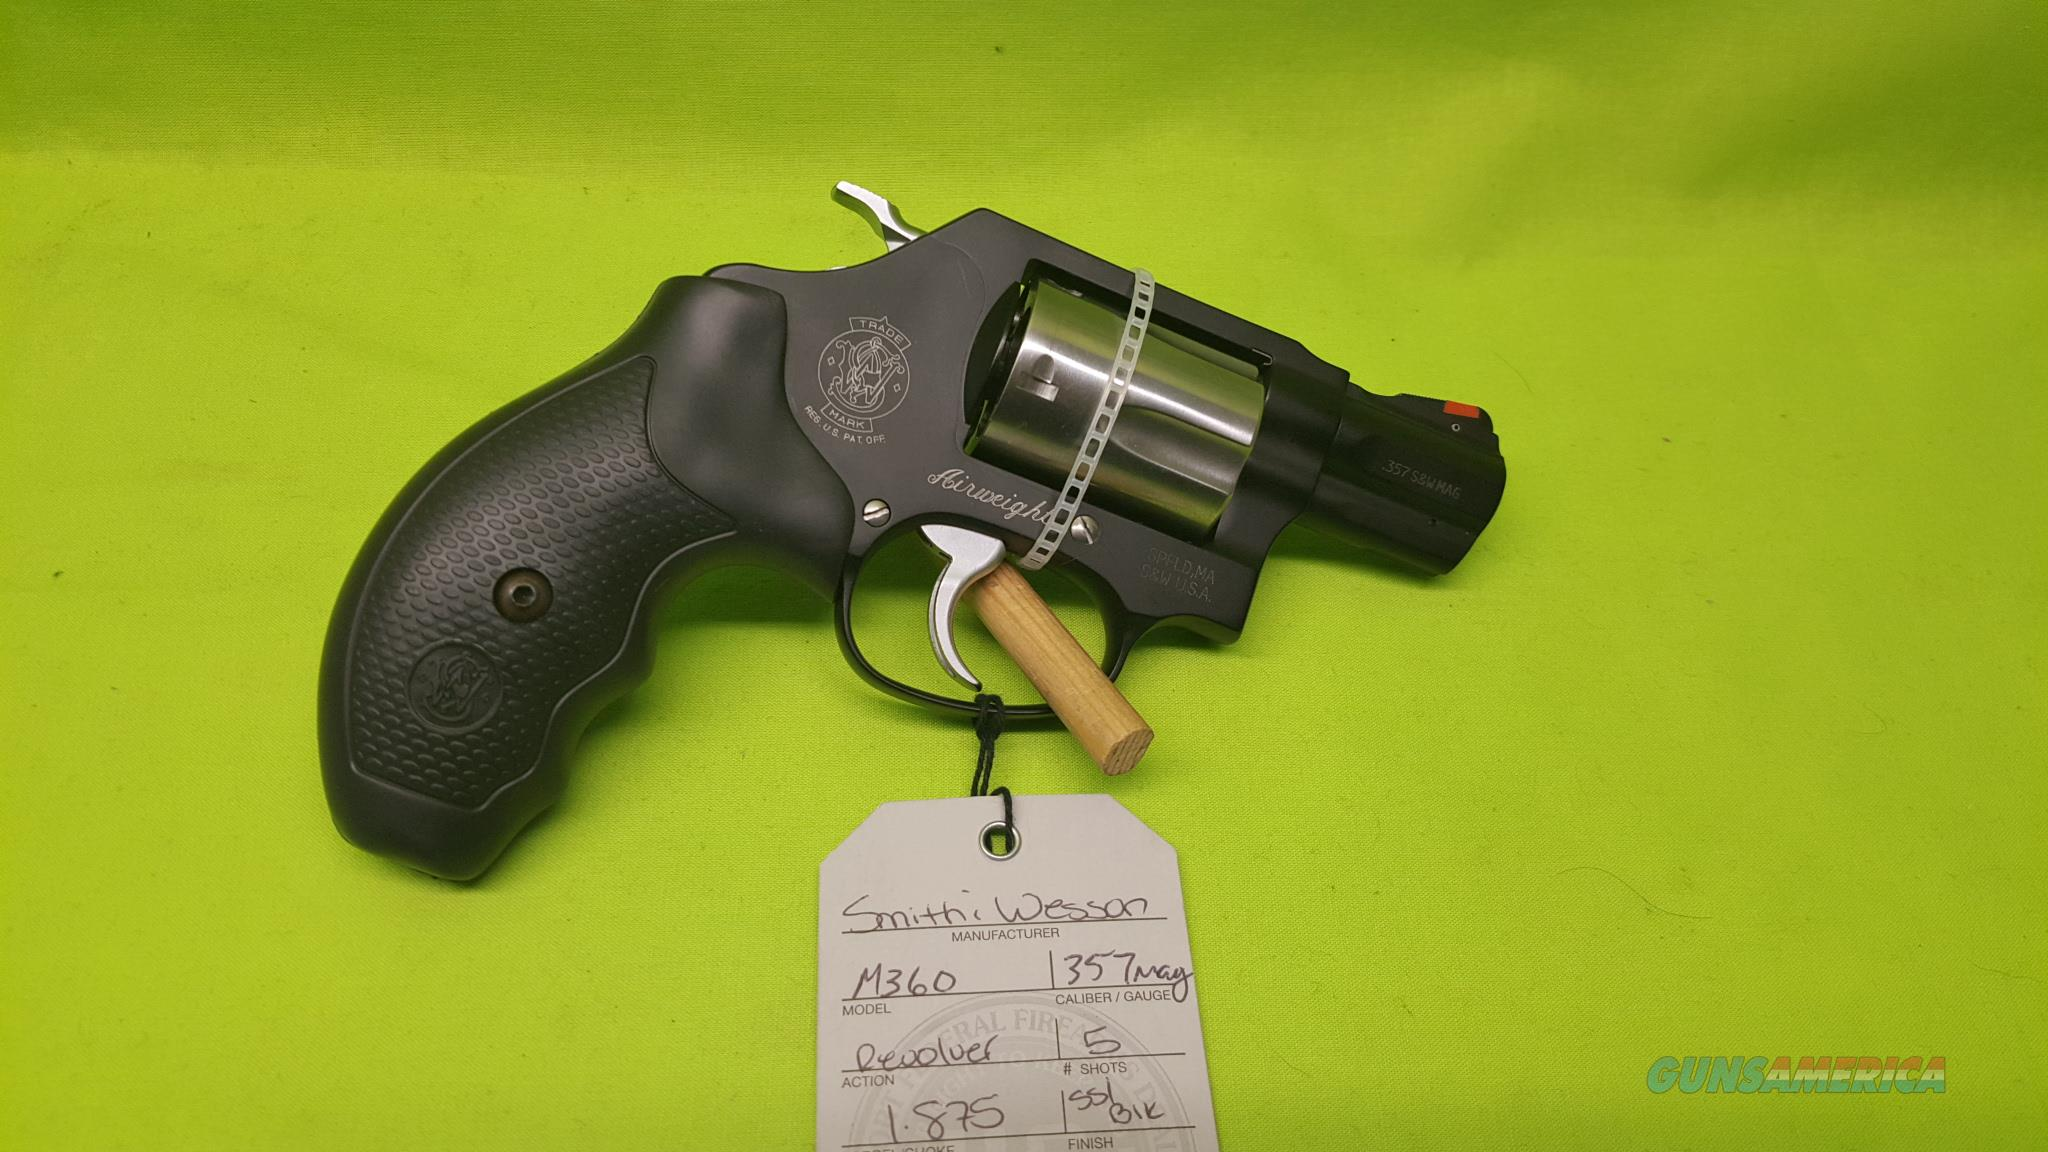 S&W M360 360 357MAG 357 MAG AIRWEIGHT 11713  Guns > Pistols > Smith & Wesson Revolvers > Small Frame ( J )